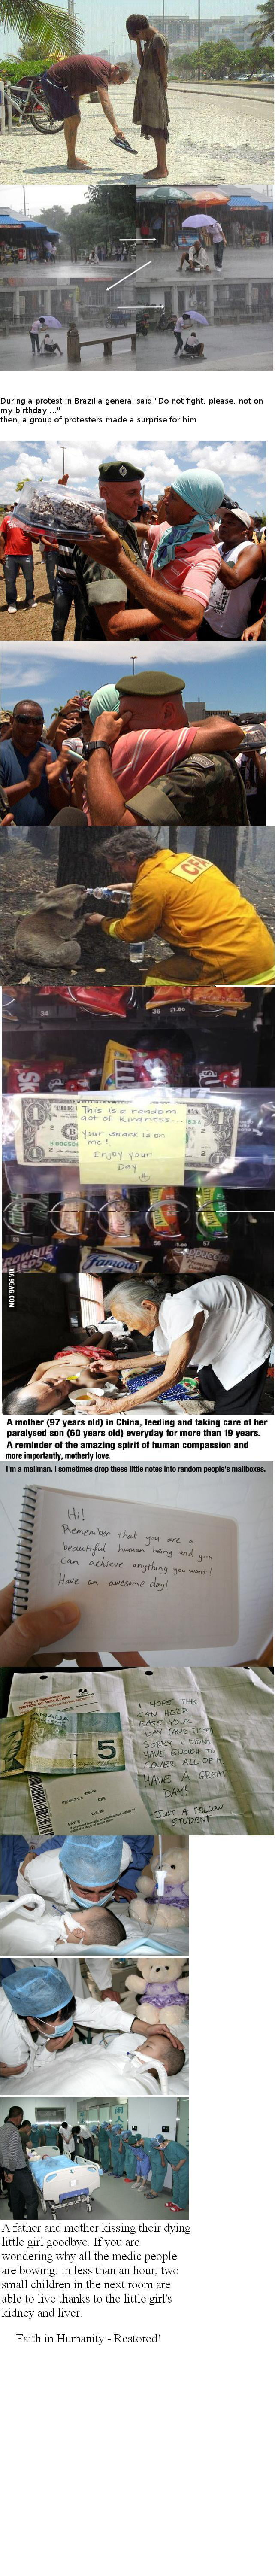 Faith in Humanity - Restored!